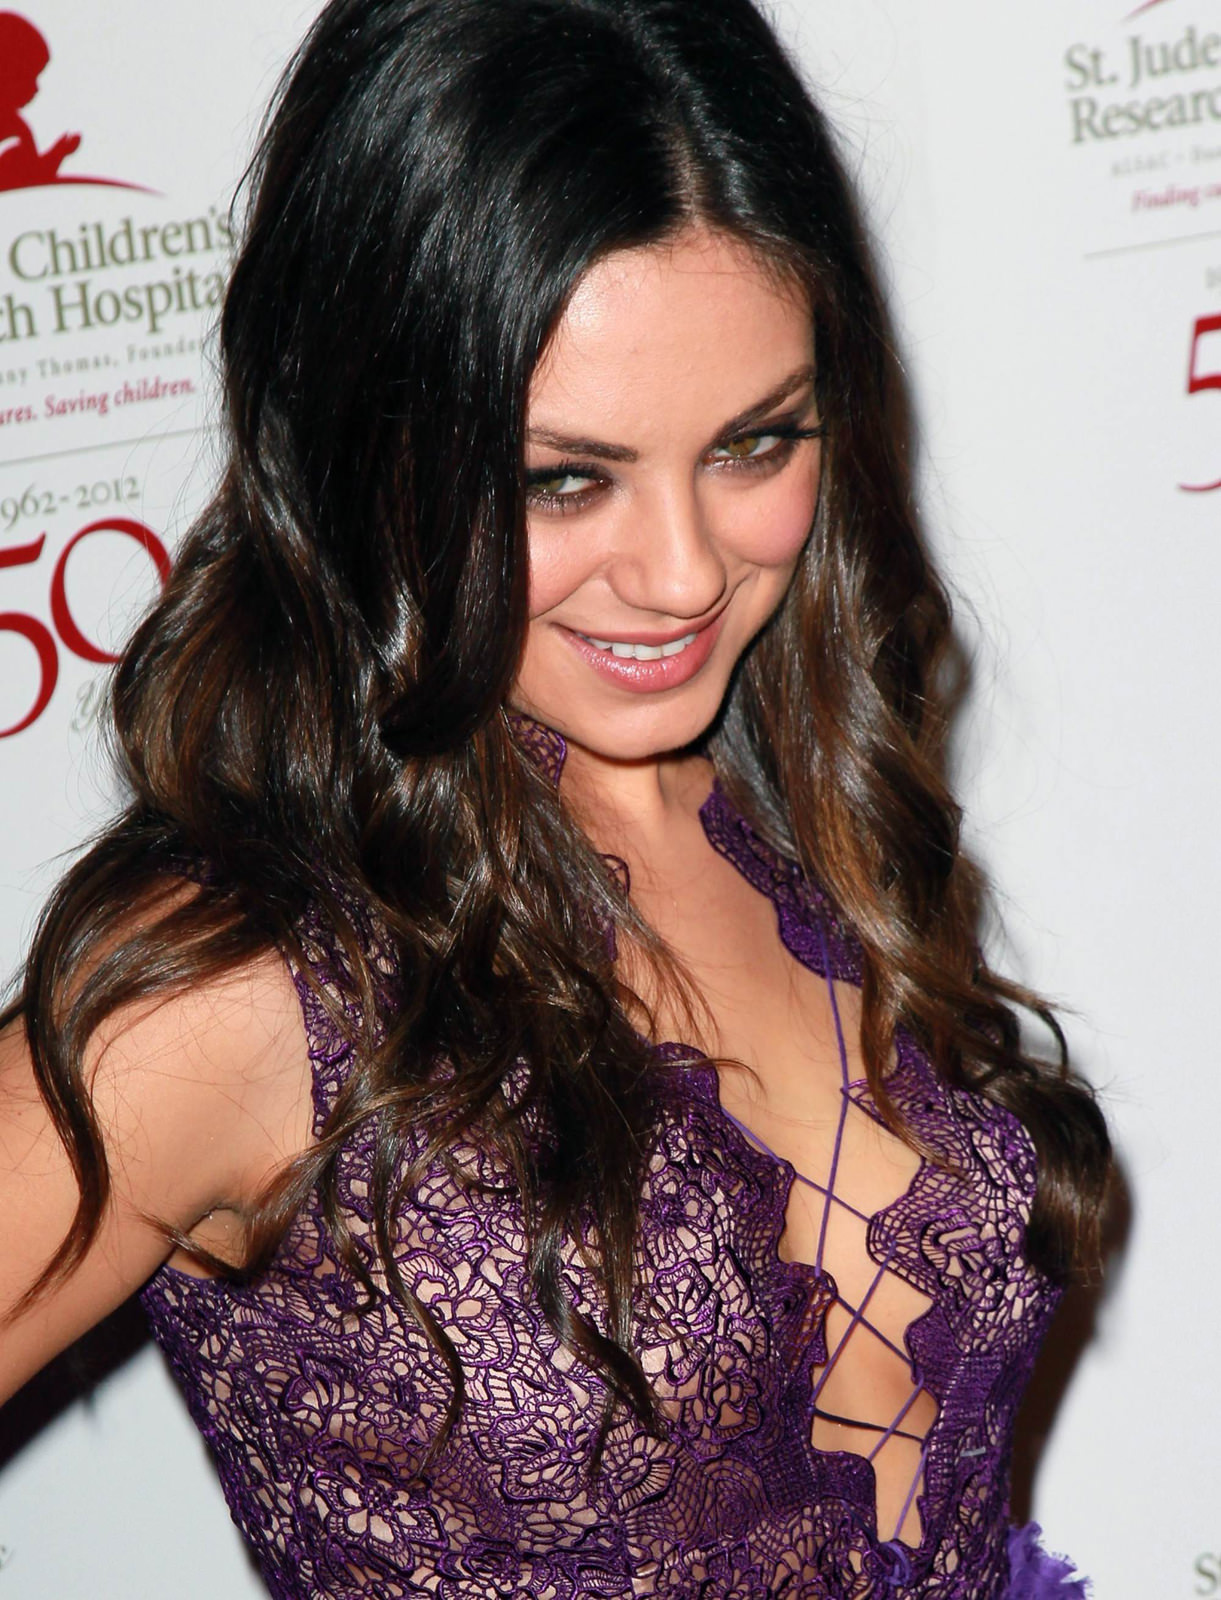 Mila Kunis Photo Gallery